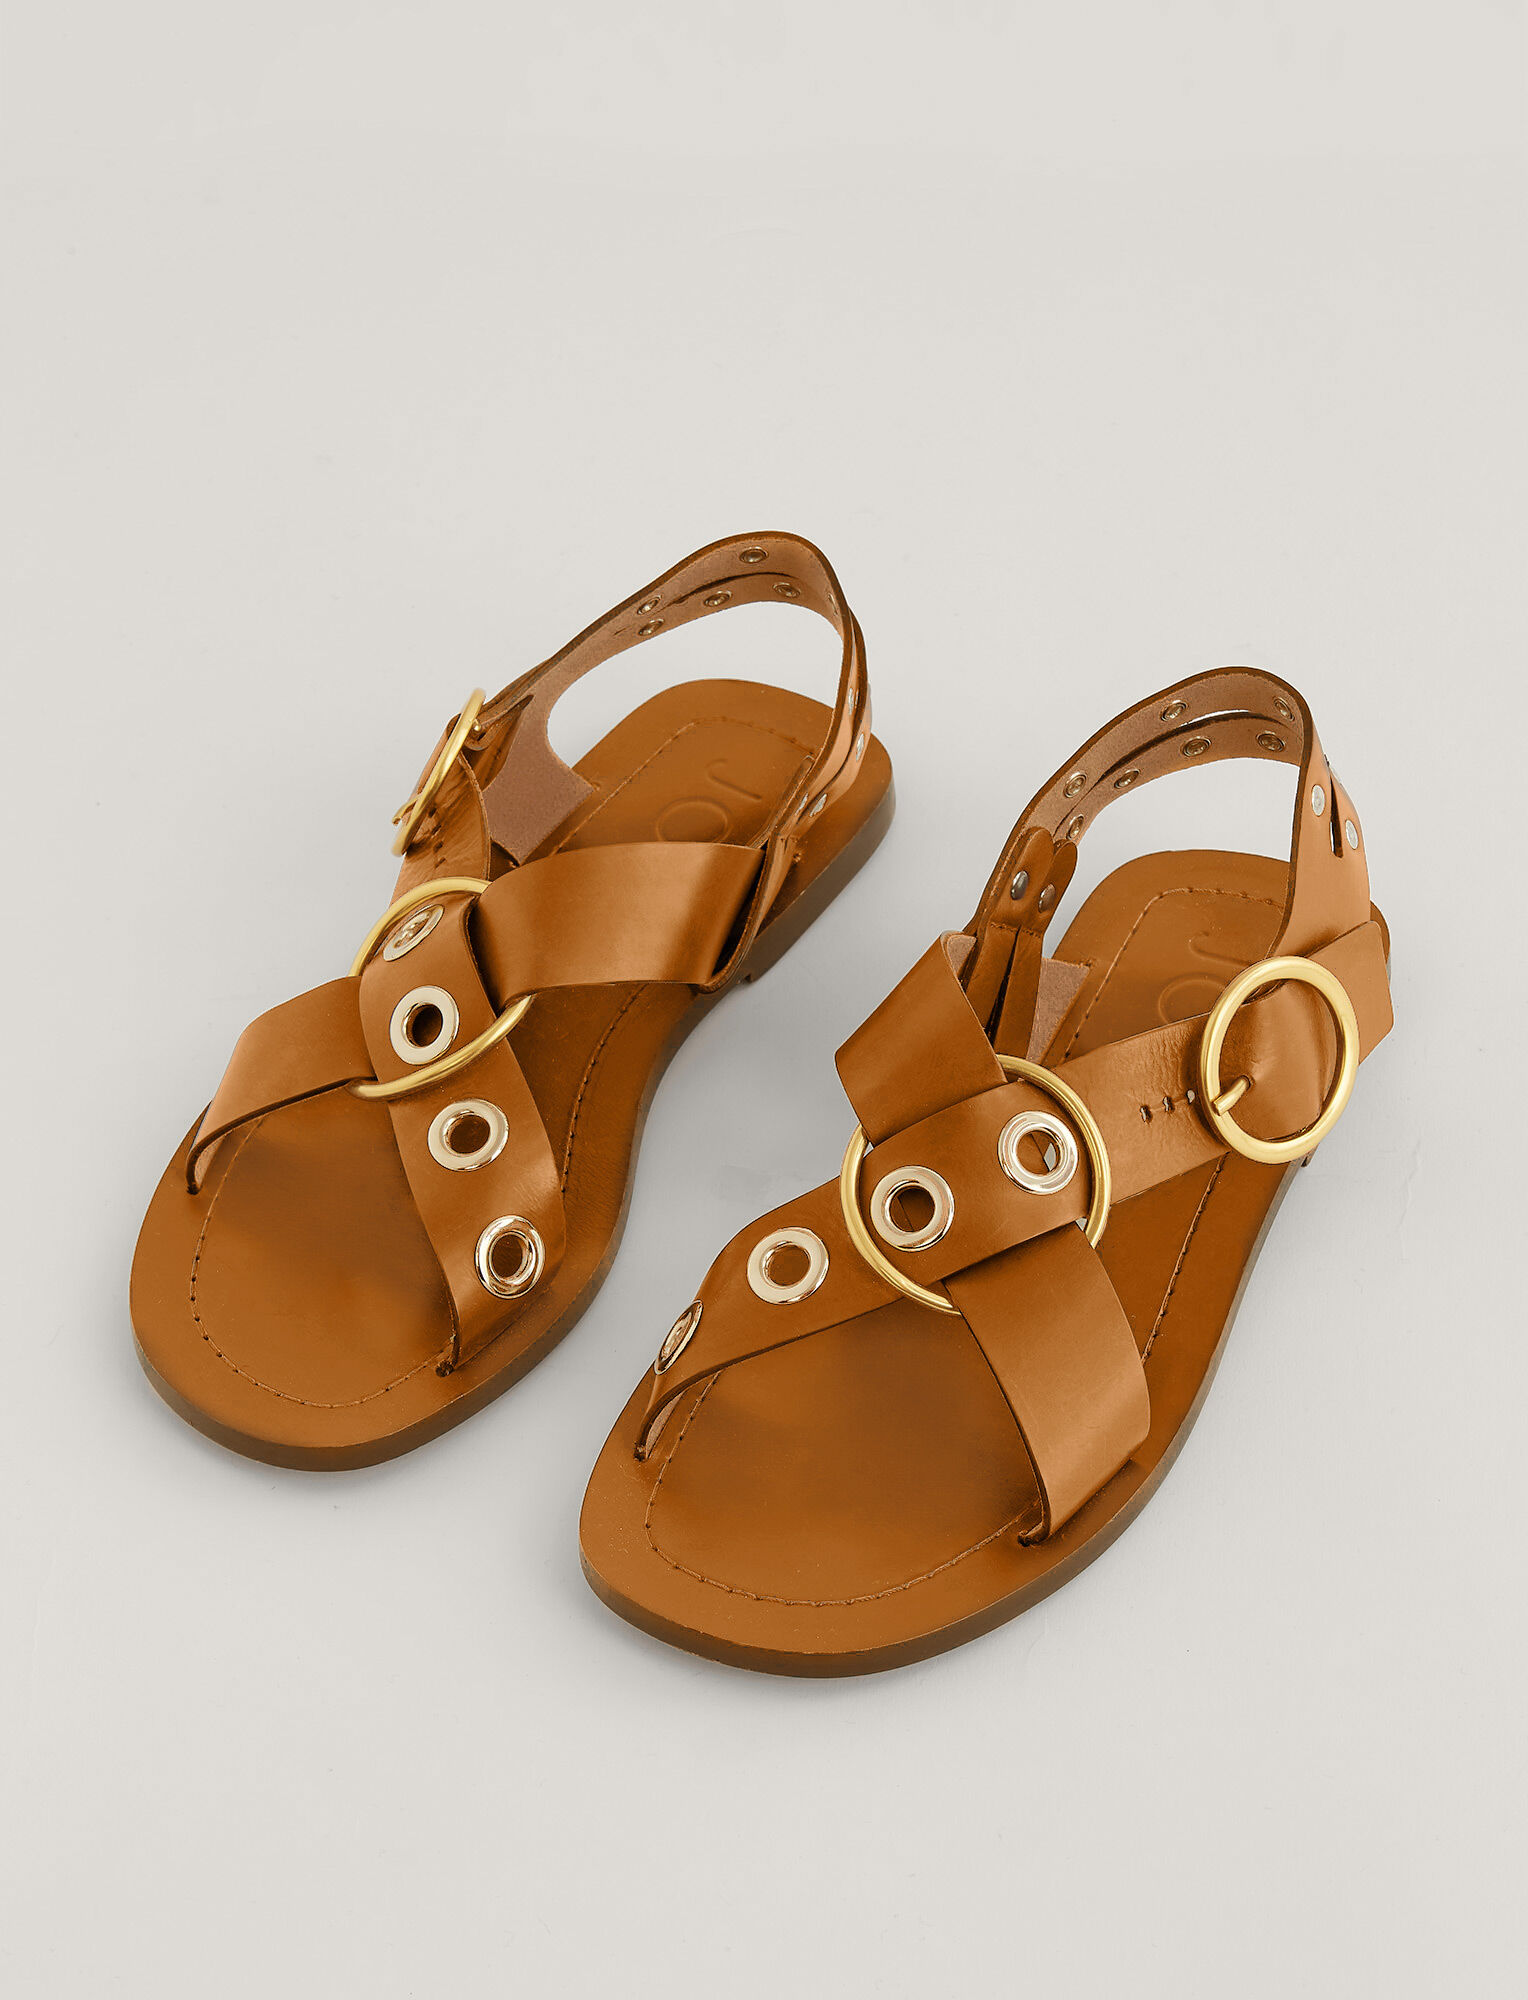 Joseph, Gaya Leather Sandal, in TAN